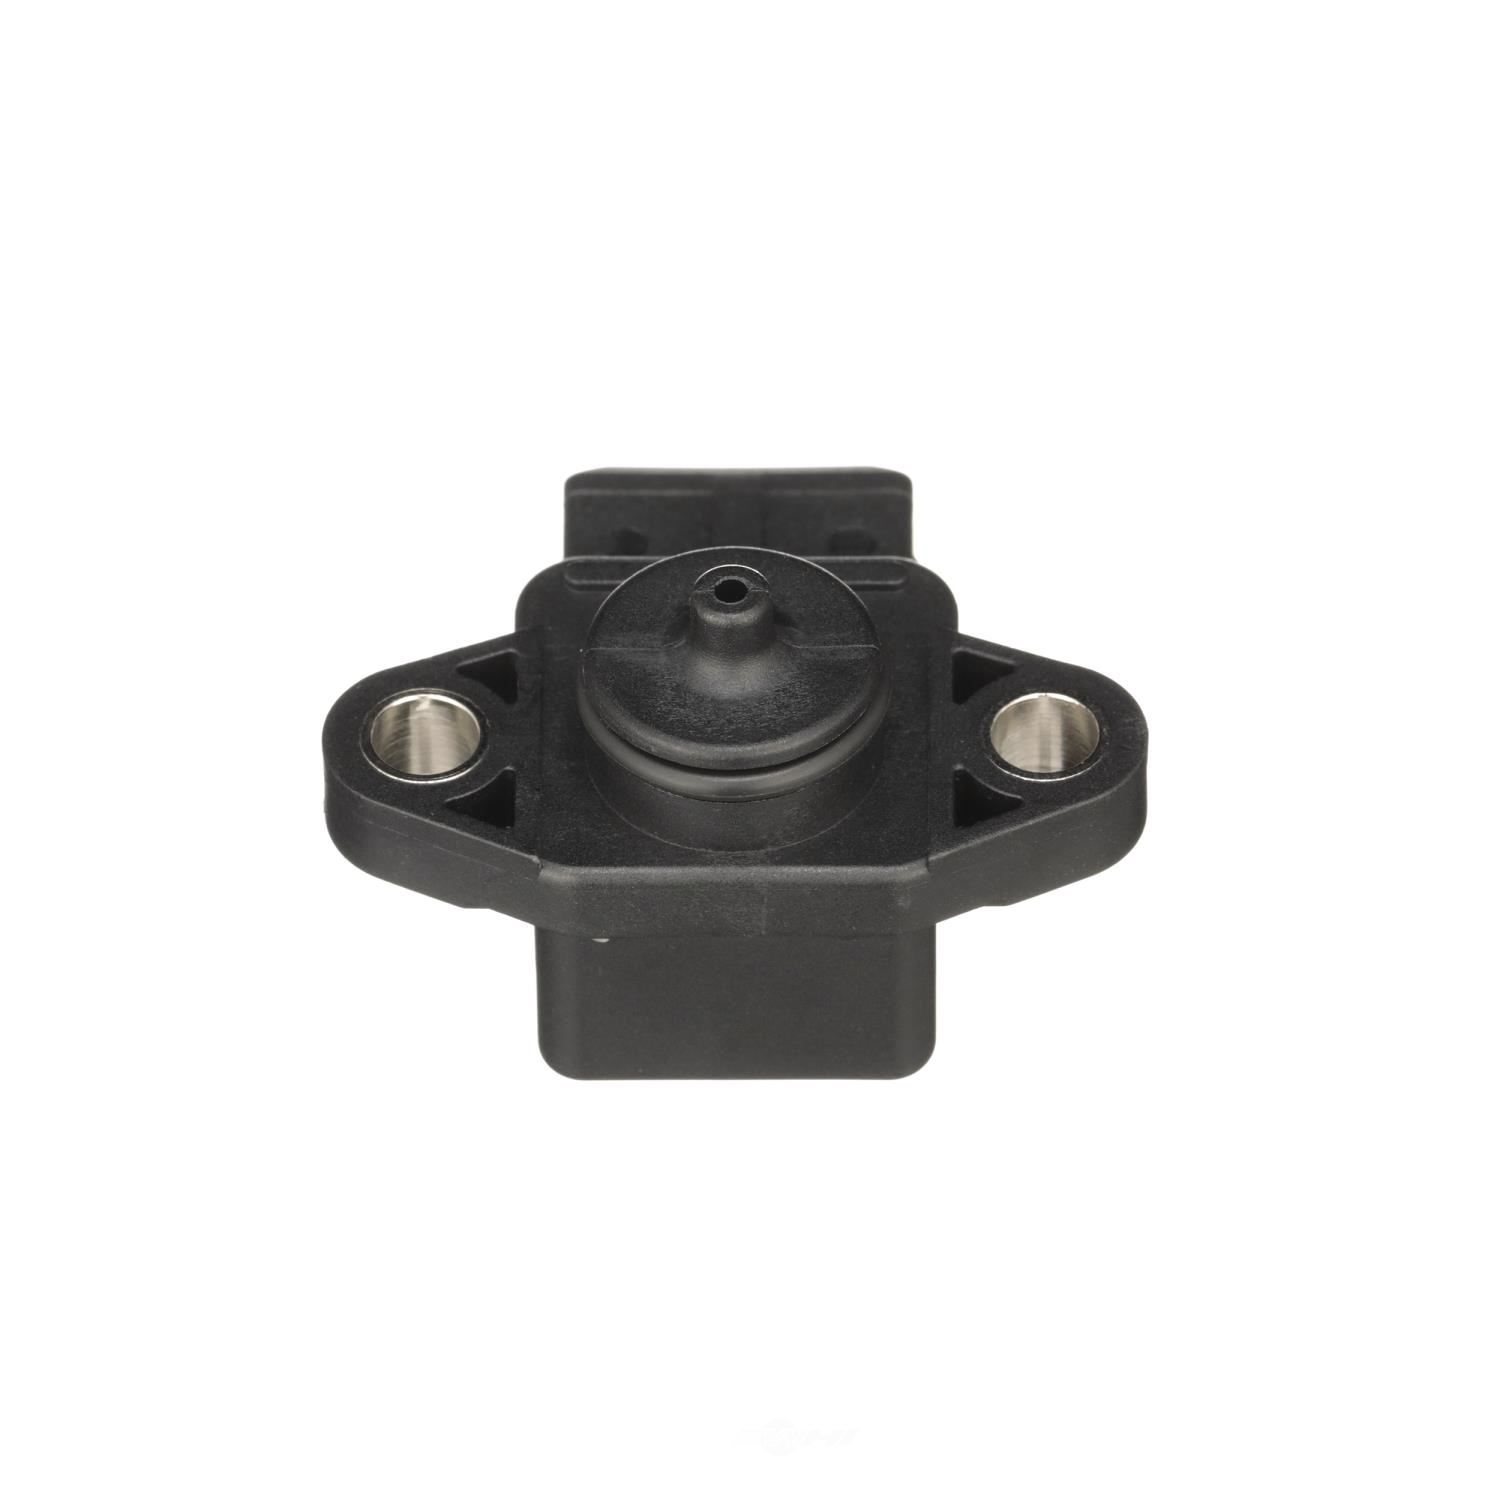 STANDARD MOTOR PRODUCTS - Manifold Differential Pressure Sensor - STA AS42